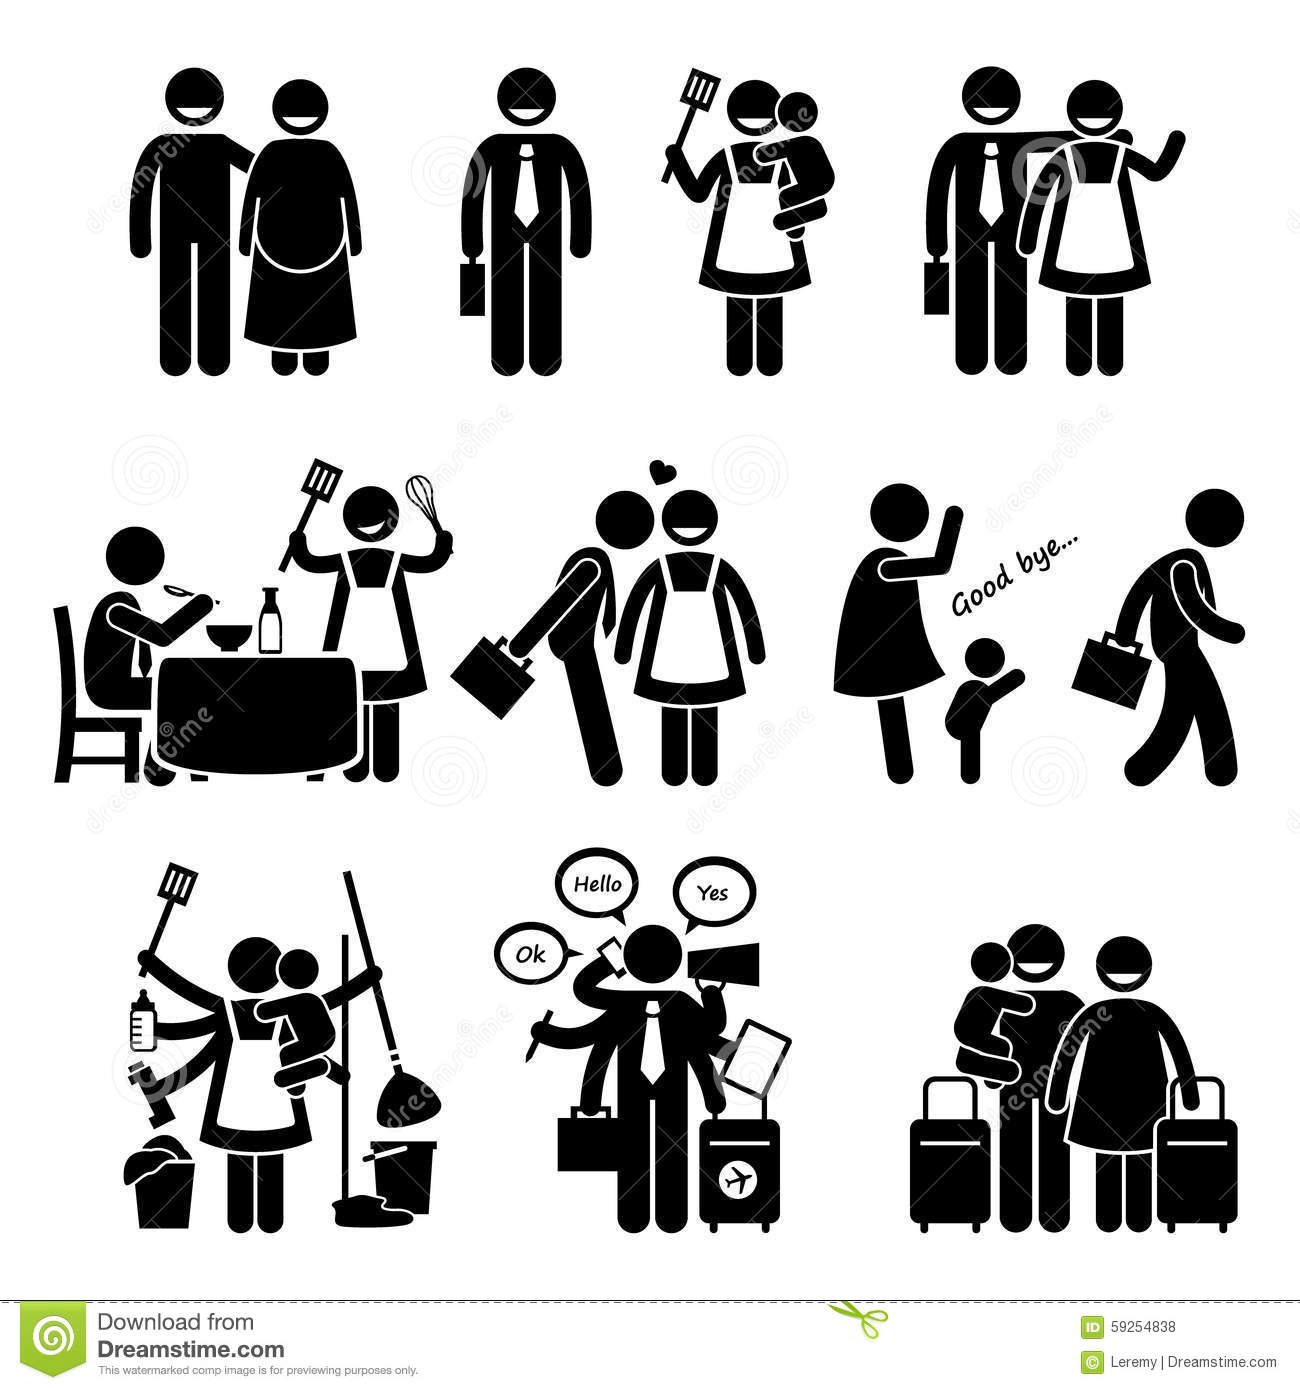 Stock Illustration Happy Busy Family Husband Wife Cliparts Human Pictogram Stick Figures Showing How Lifestyle Love Each Image59254838 on leremy